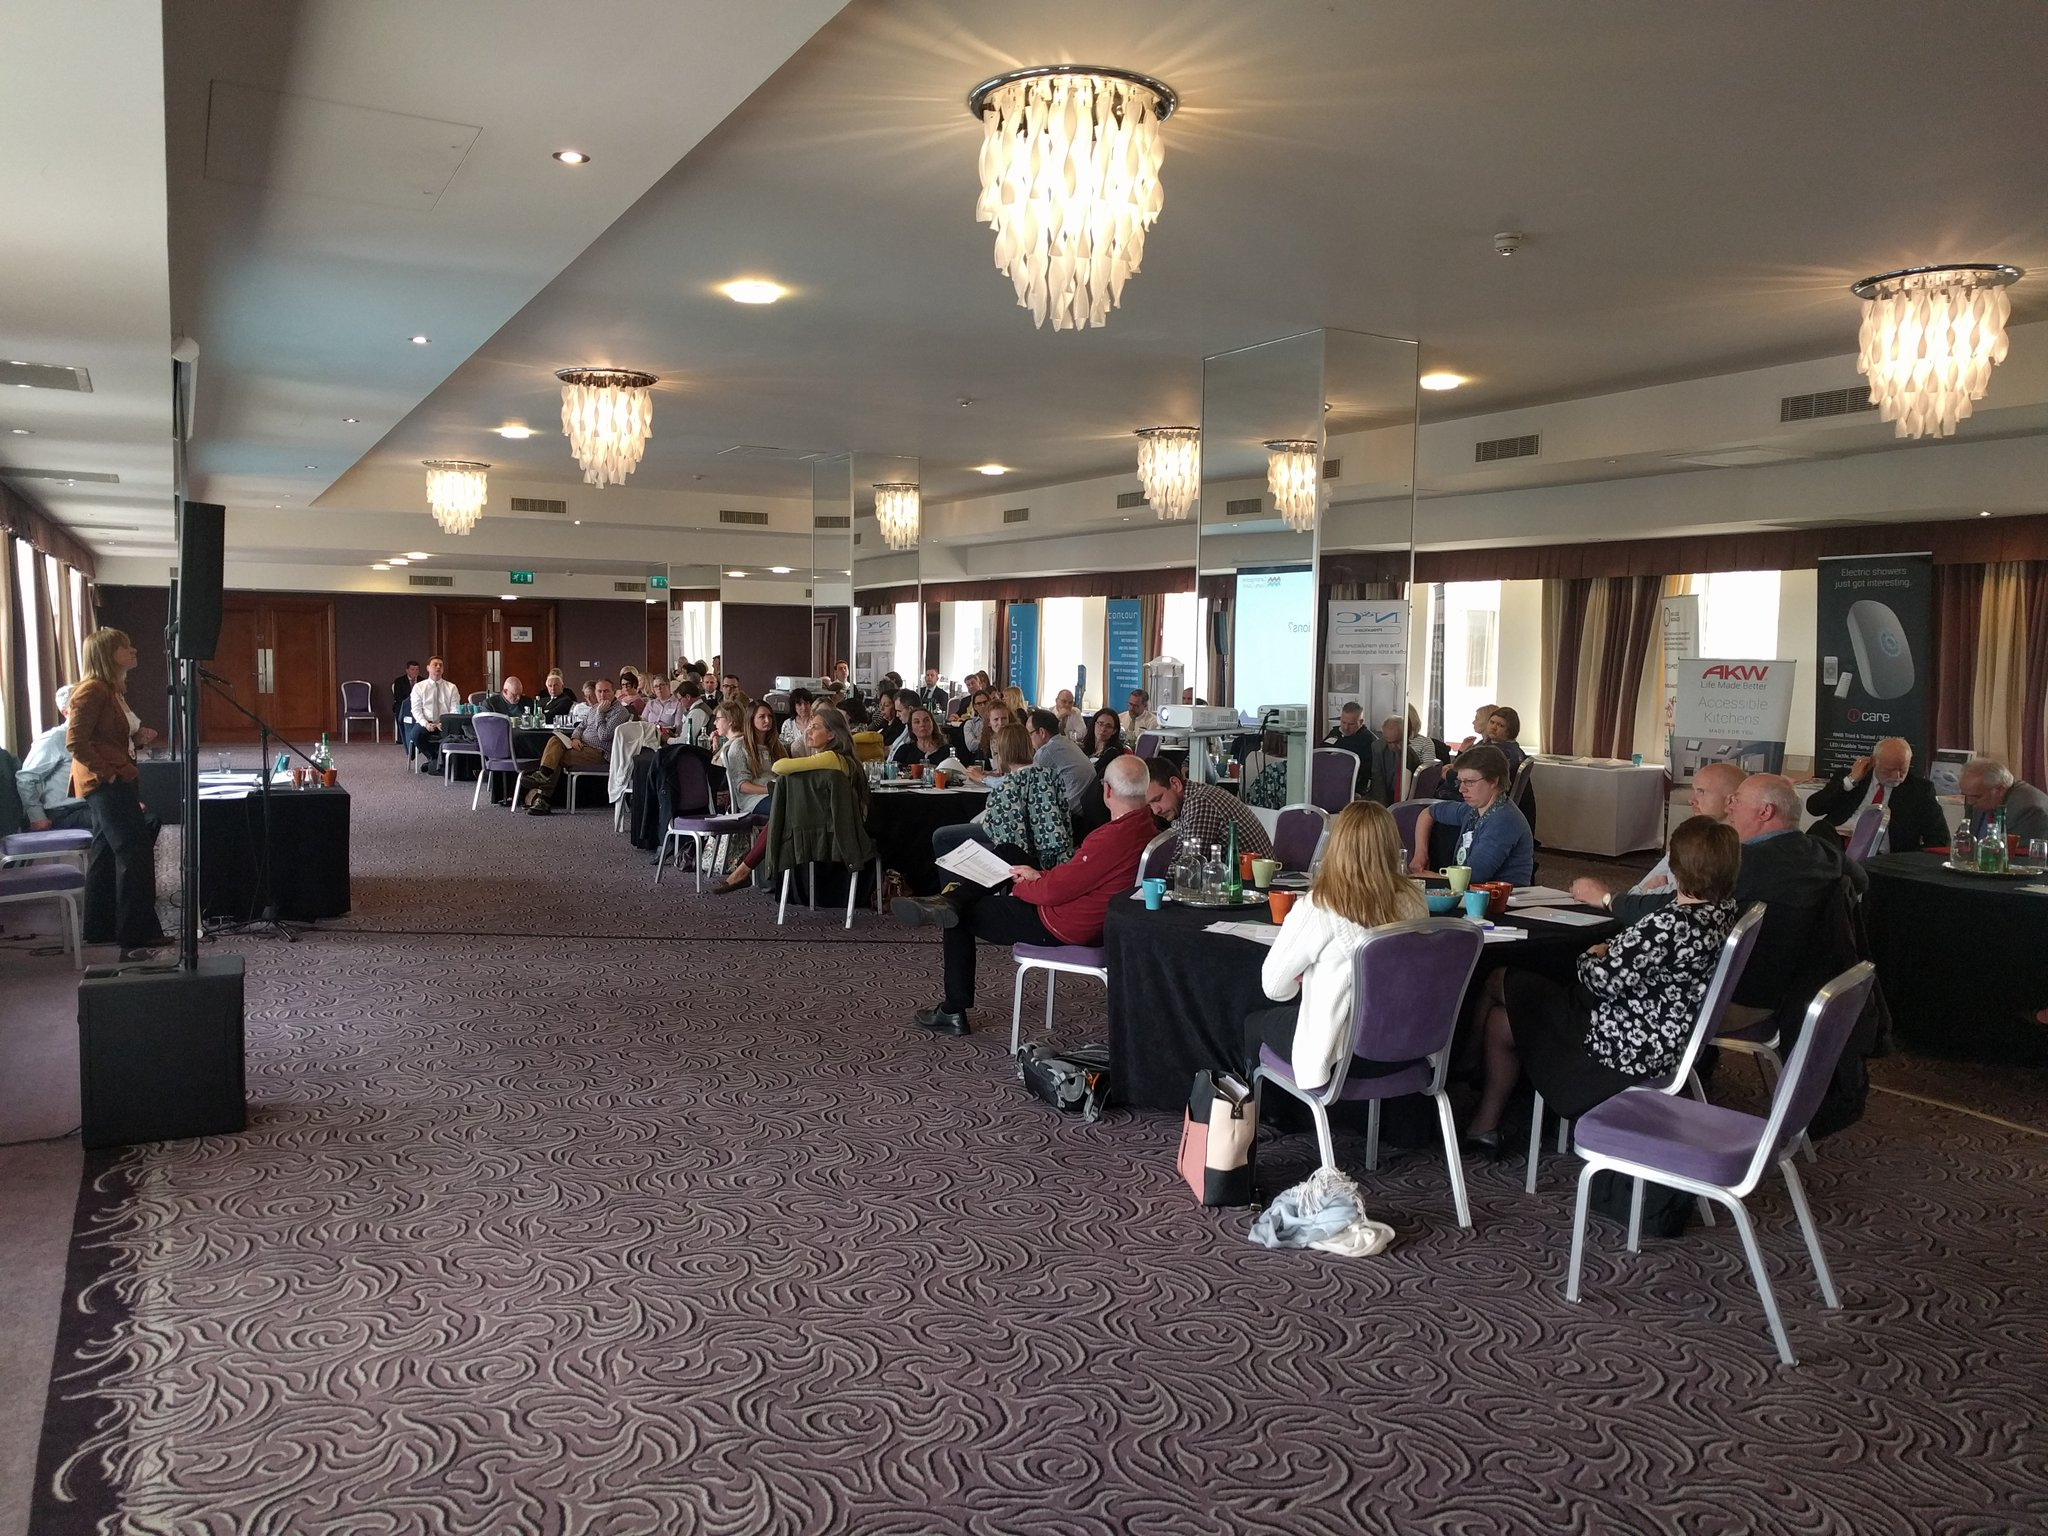 #DFGChampions discussing two tier local authorities issues https://t.co/M5gwBsxAd8